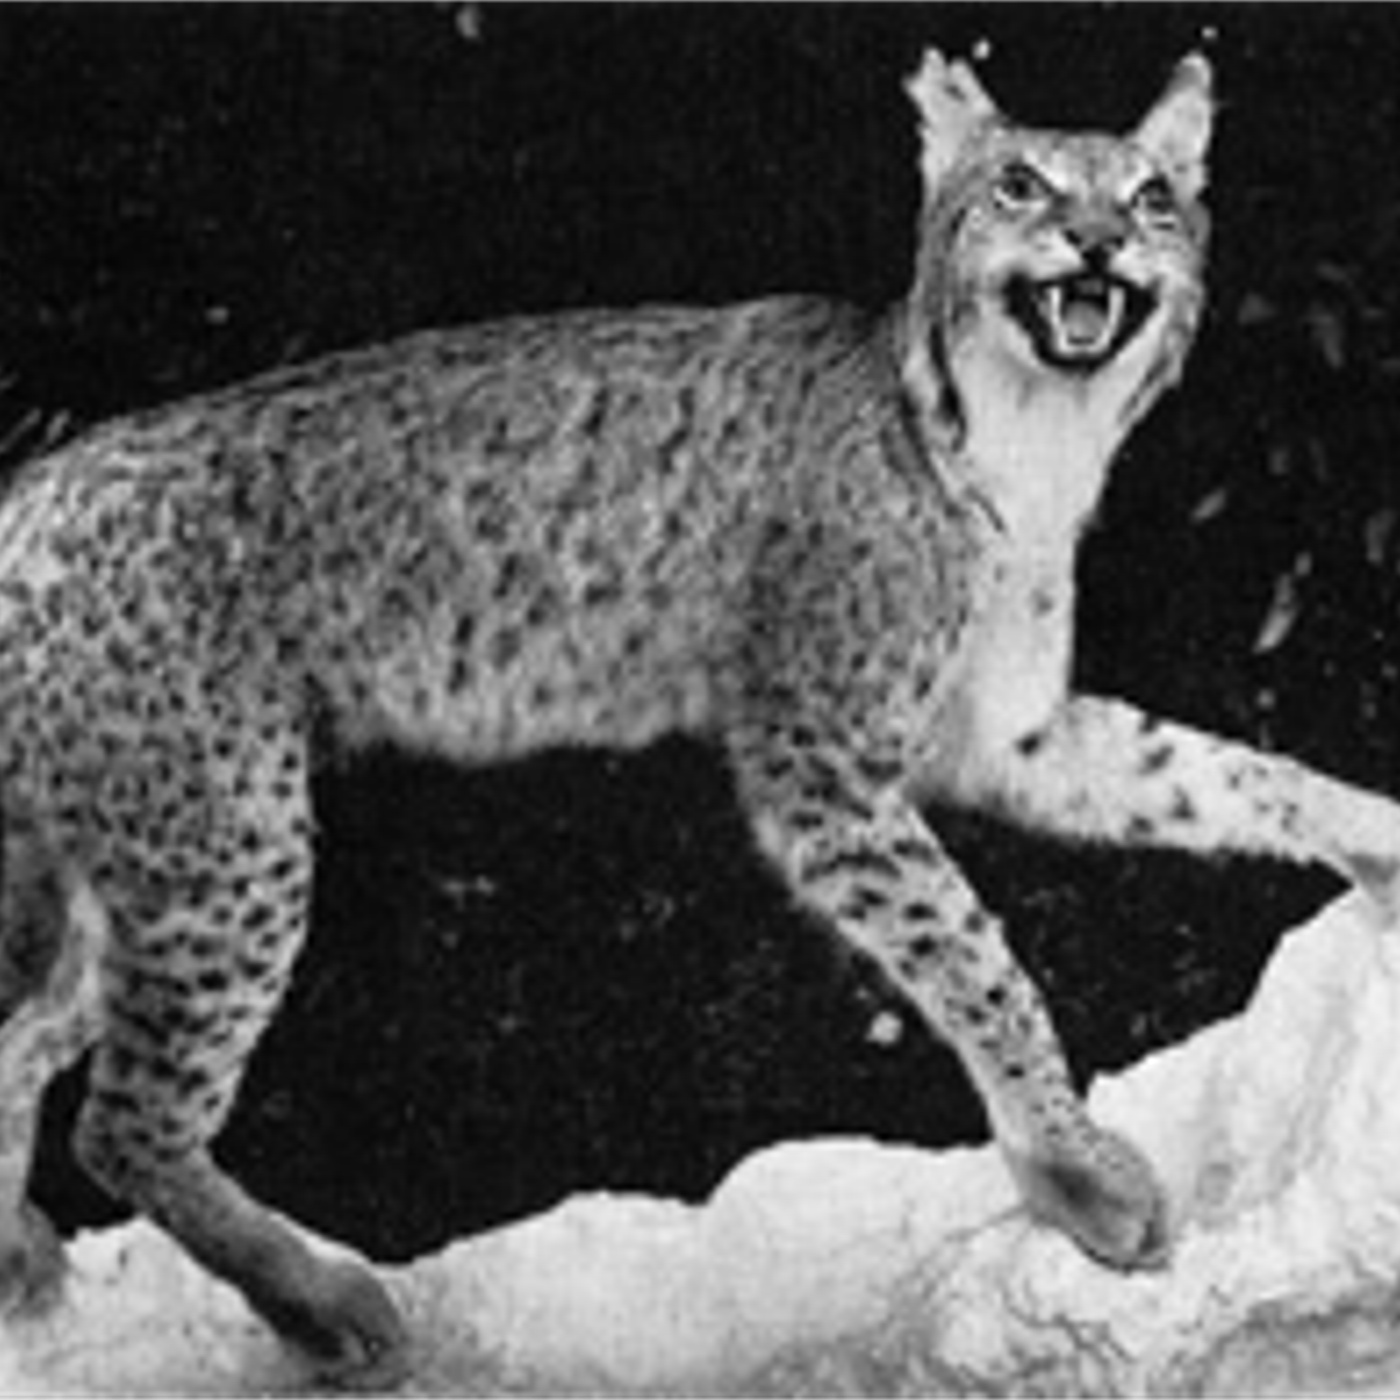 Muzej Kosova, Priština, vir: Ð. Miric (The Lynx populations of the Balkan peninsula, 1981)